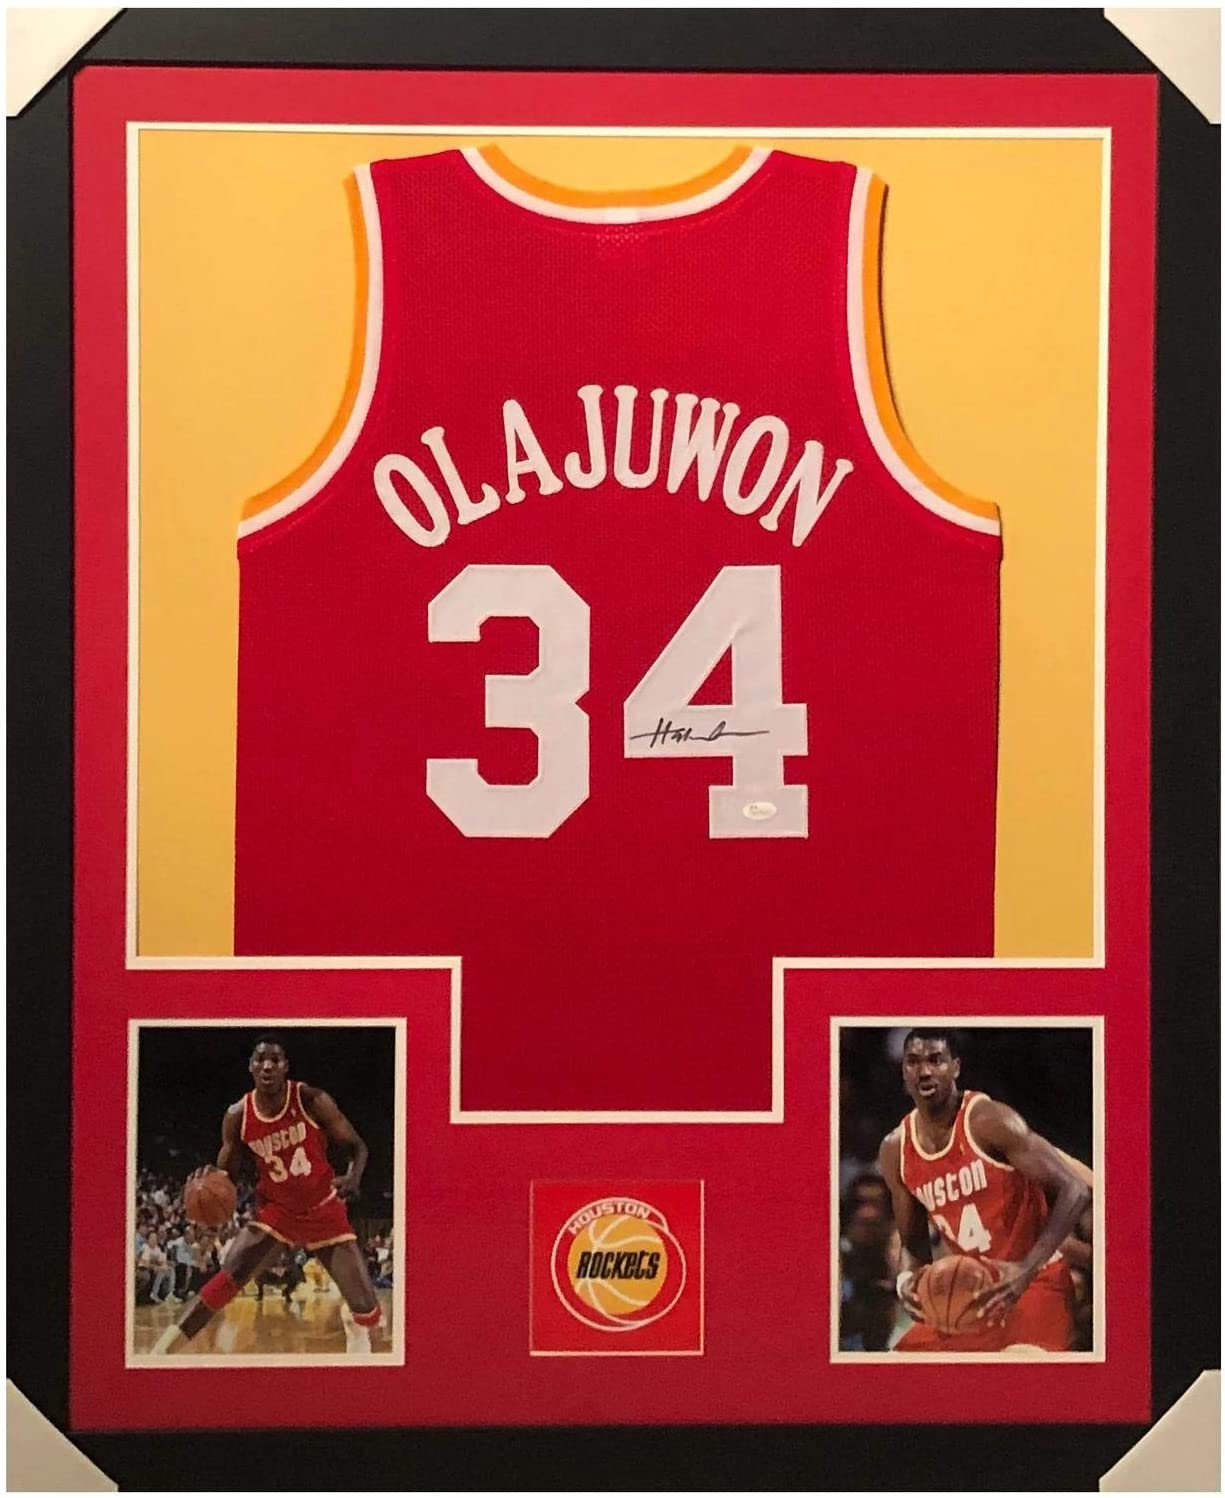 Signed Hakeem Olajuwon Jersey - Framed Vertical Layout Pro Edition Red JS - Autographed NBA Jerseys